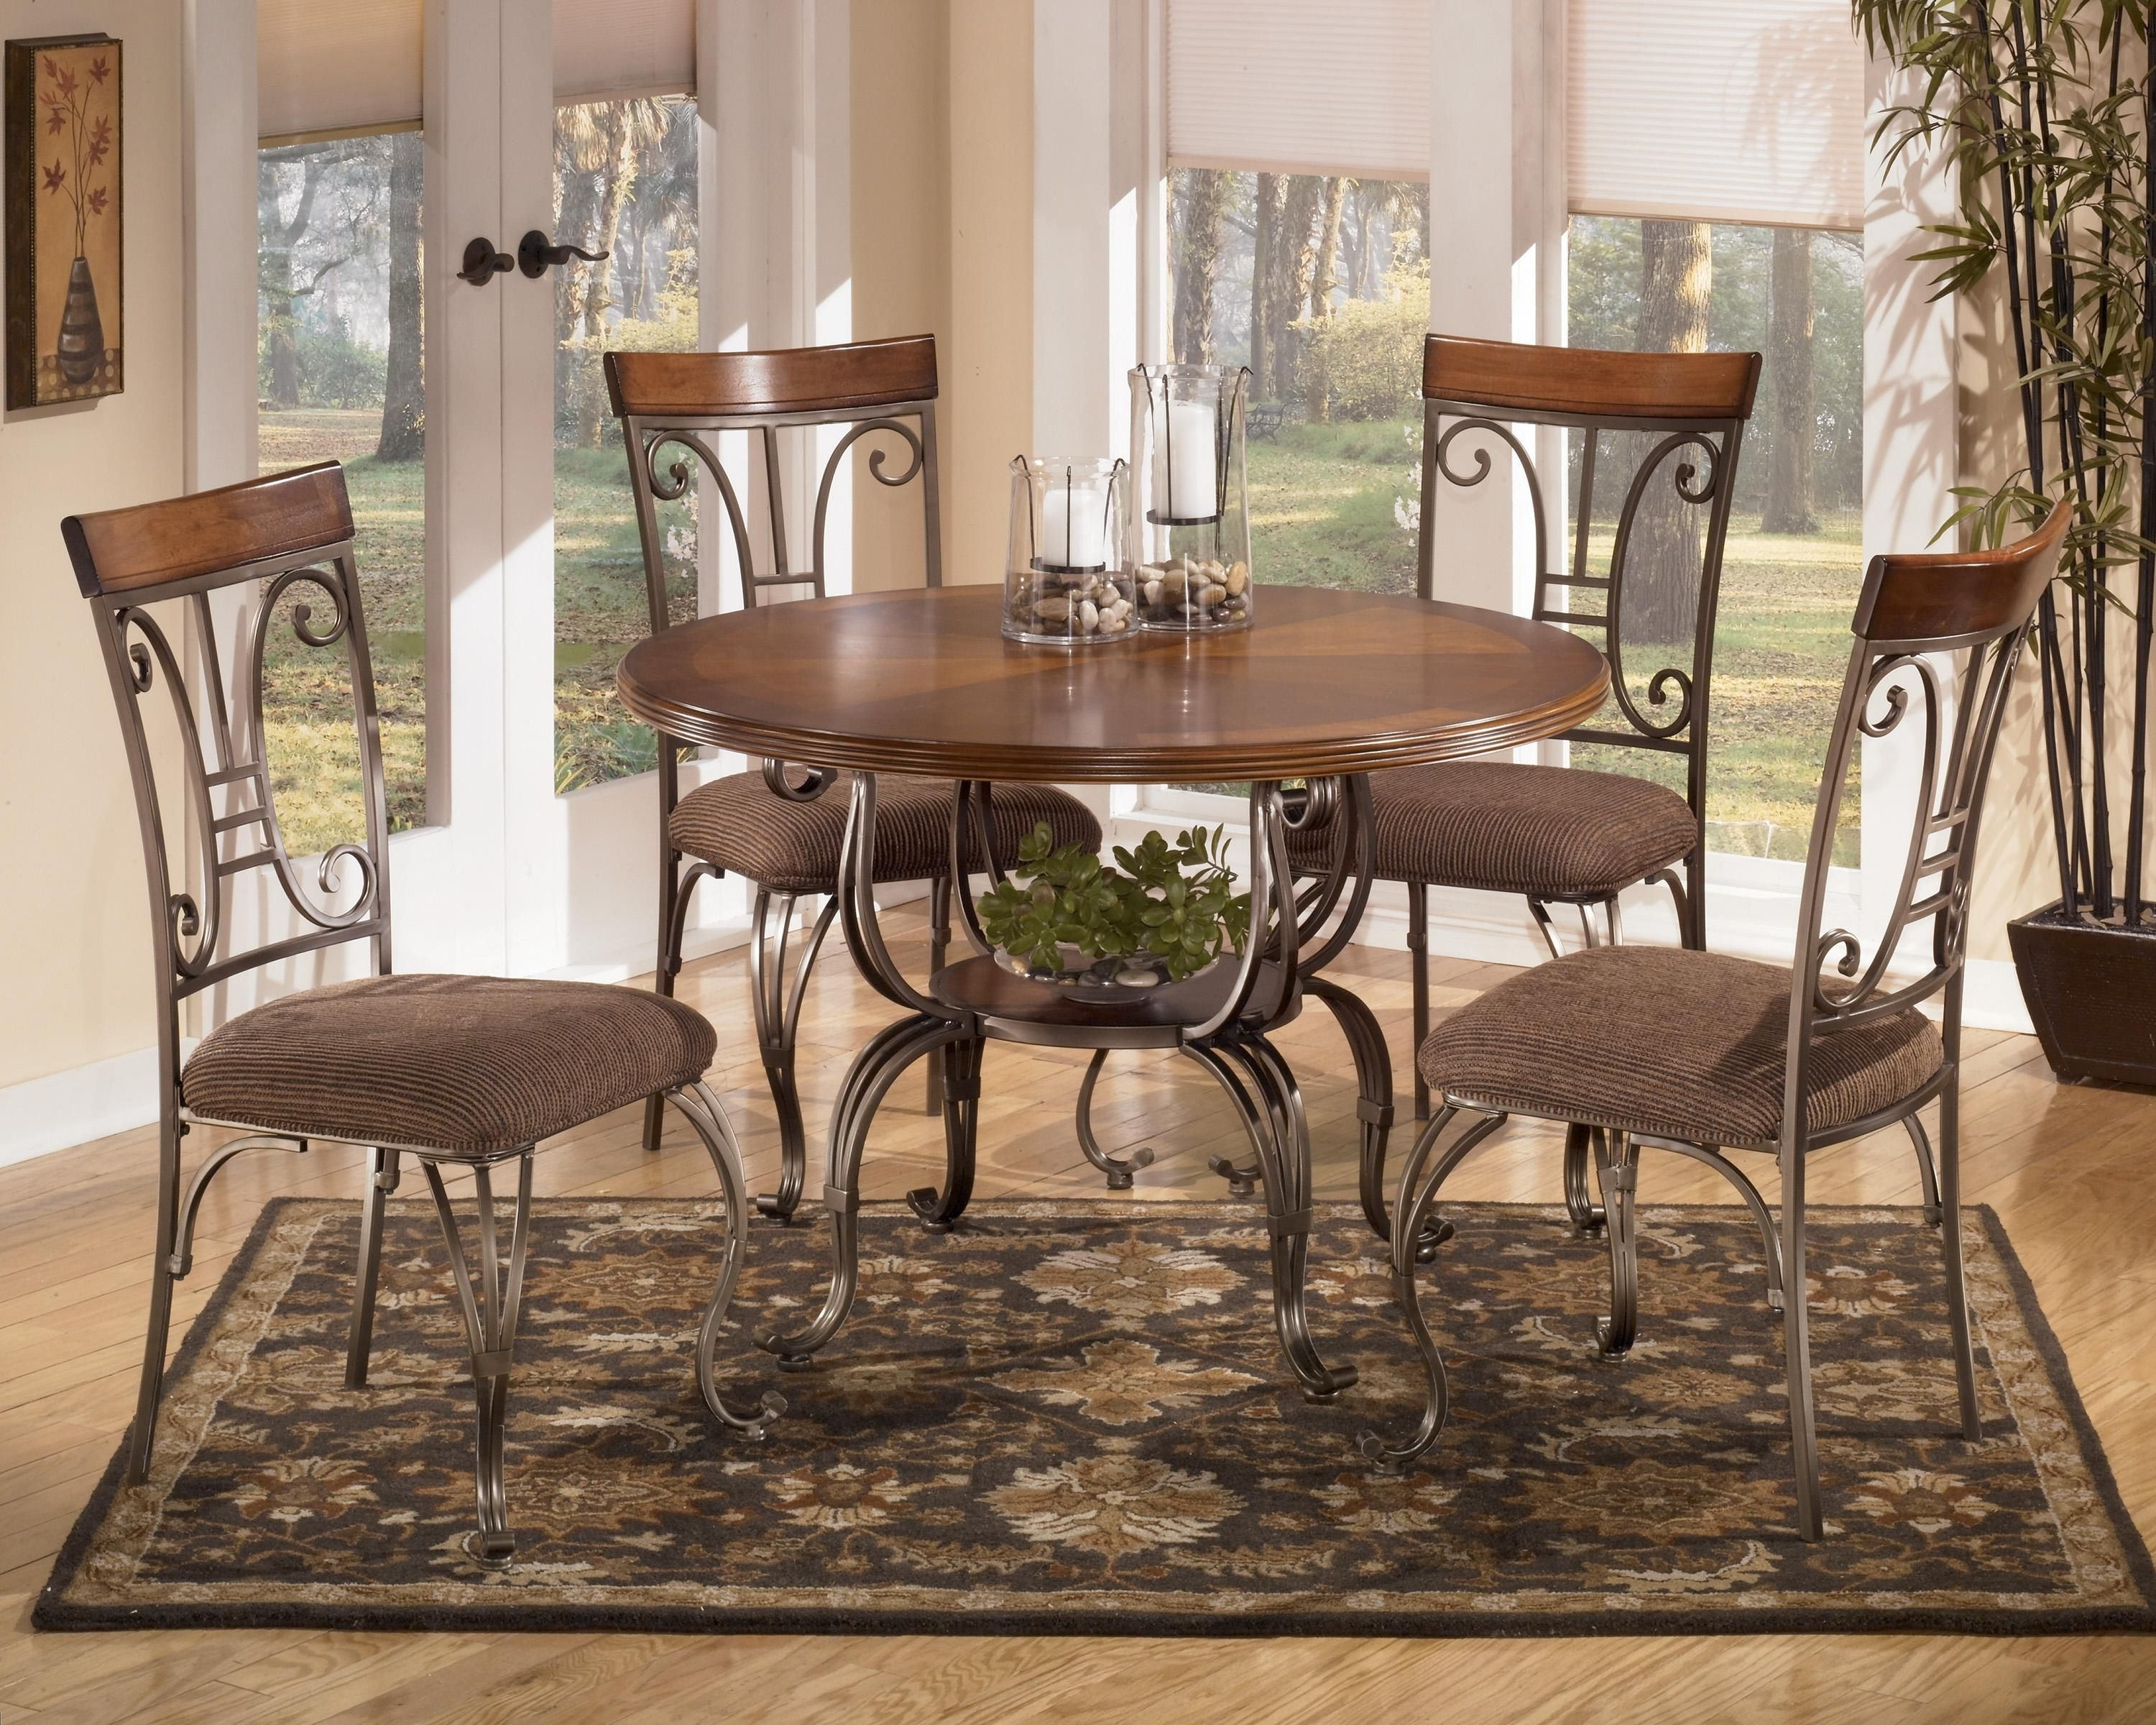 Most Popular Plentywood 5 Piece Round Dining Table Setsignature Design Inside Candice Ii 5 Piece Round Dining Sets With Slat Back Side Chairs (View 16 of 25)